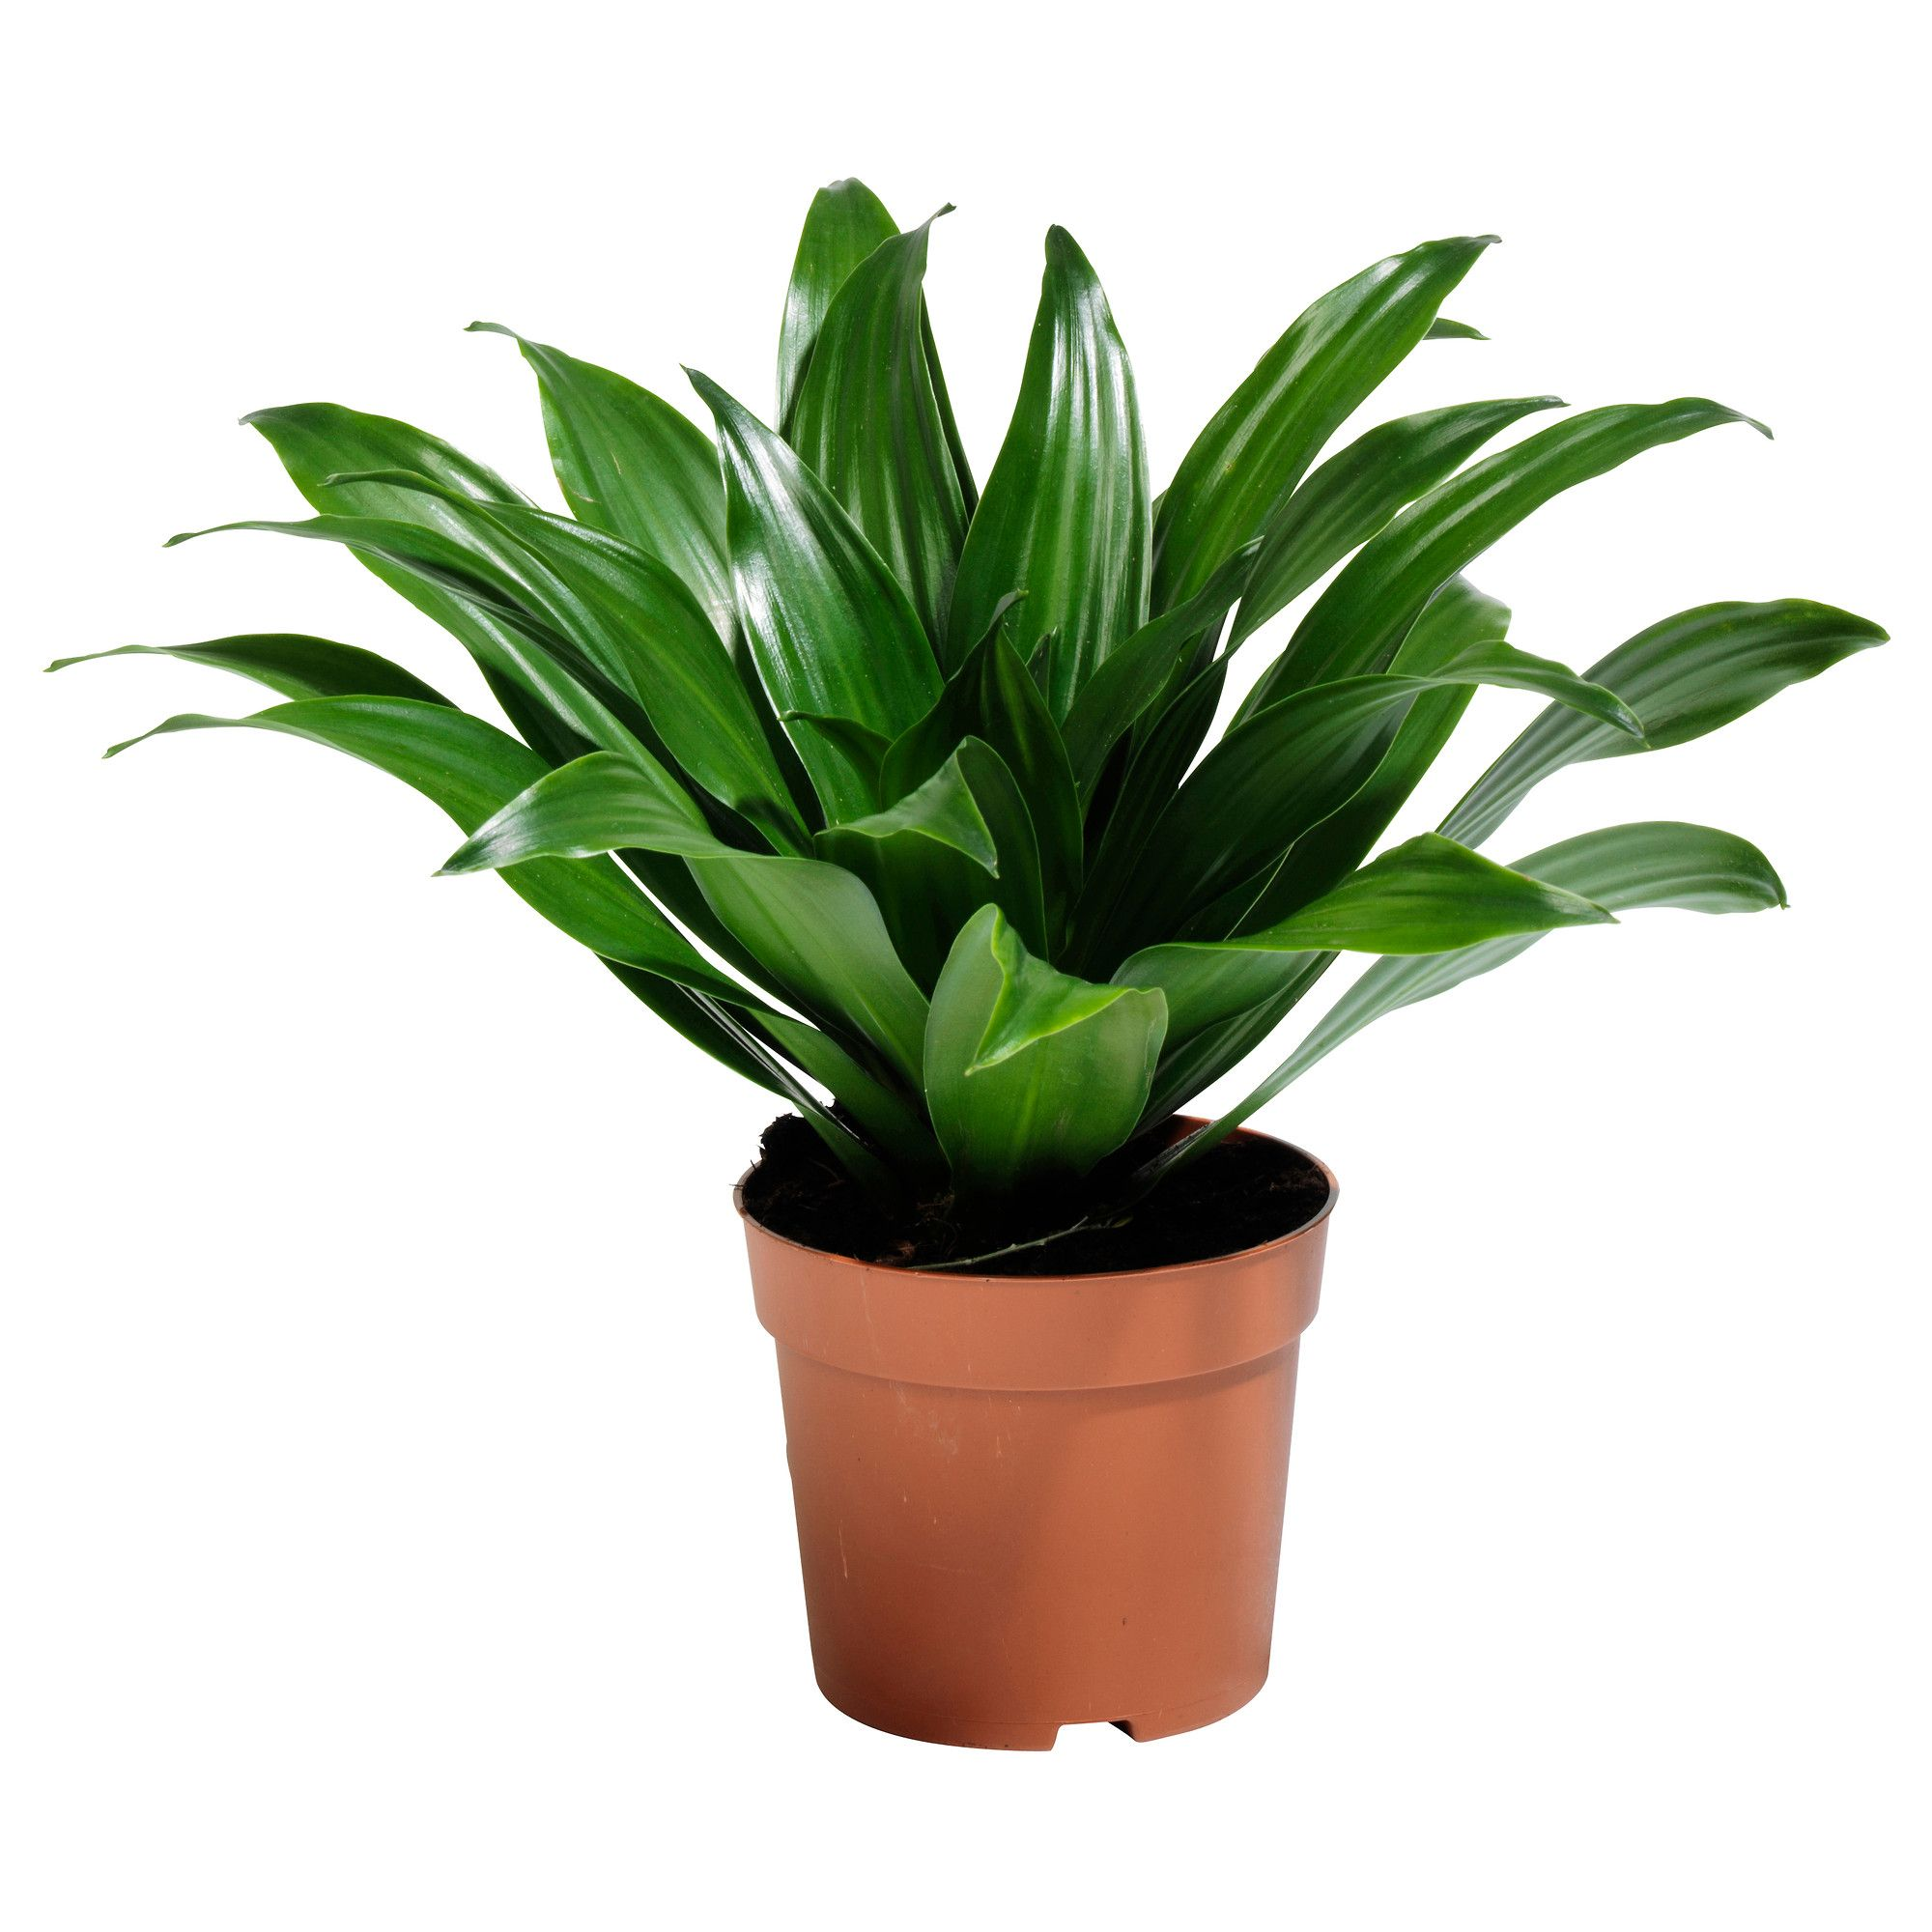 Dracaena janet craig potted plant ikea yes this has for Ikea plantes